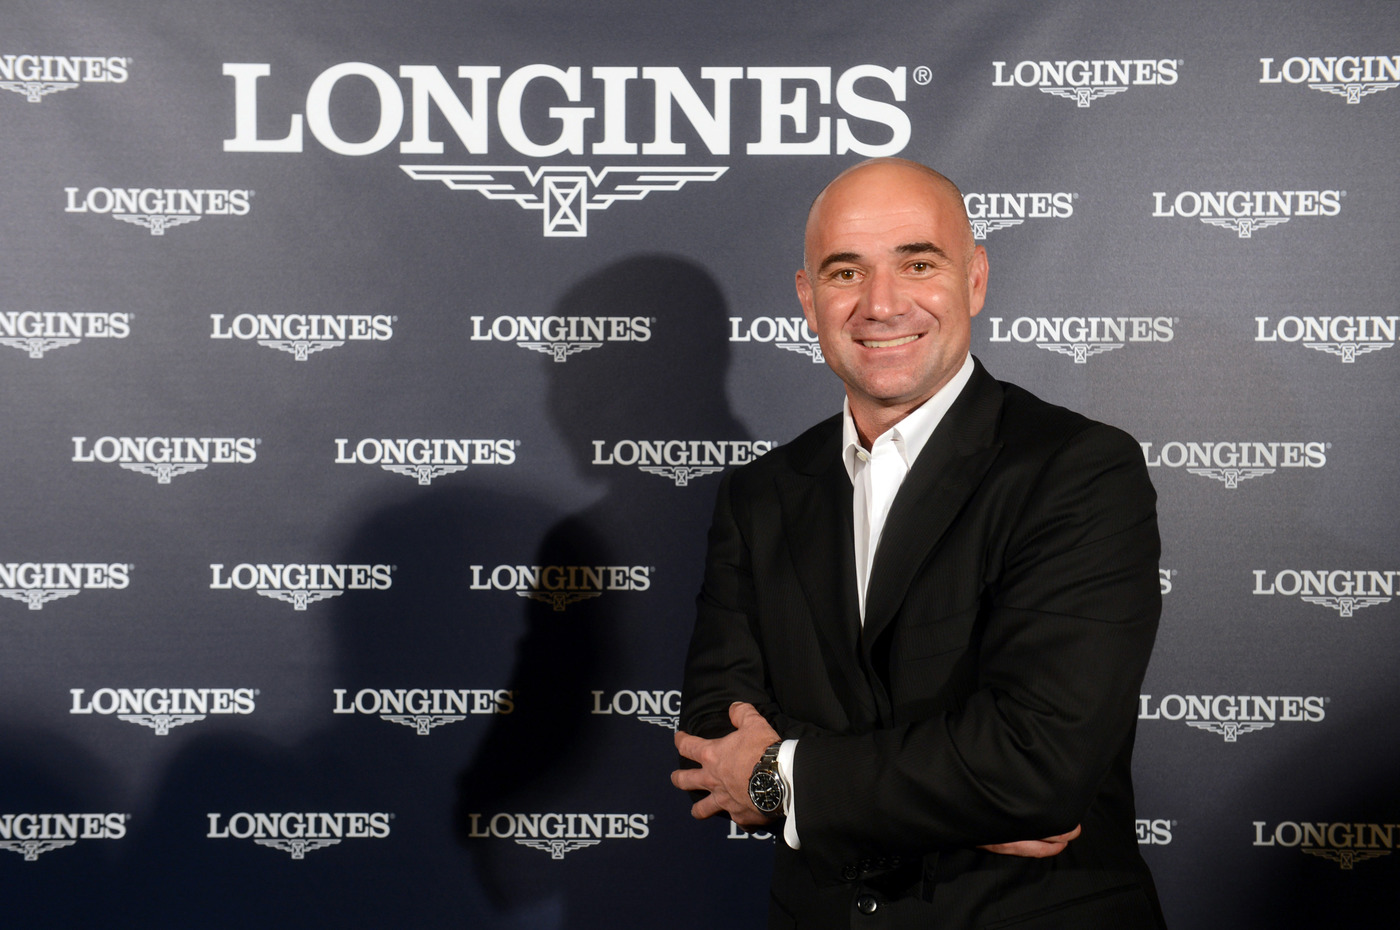 Longines Corporate Event: Longines Ambassador of Elegance Andre Agassi in Paris this weekend 1